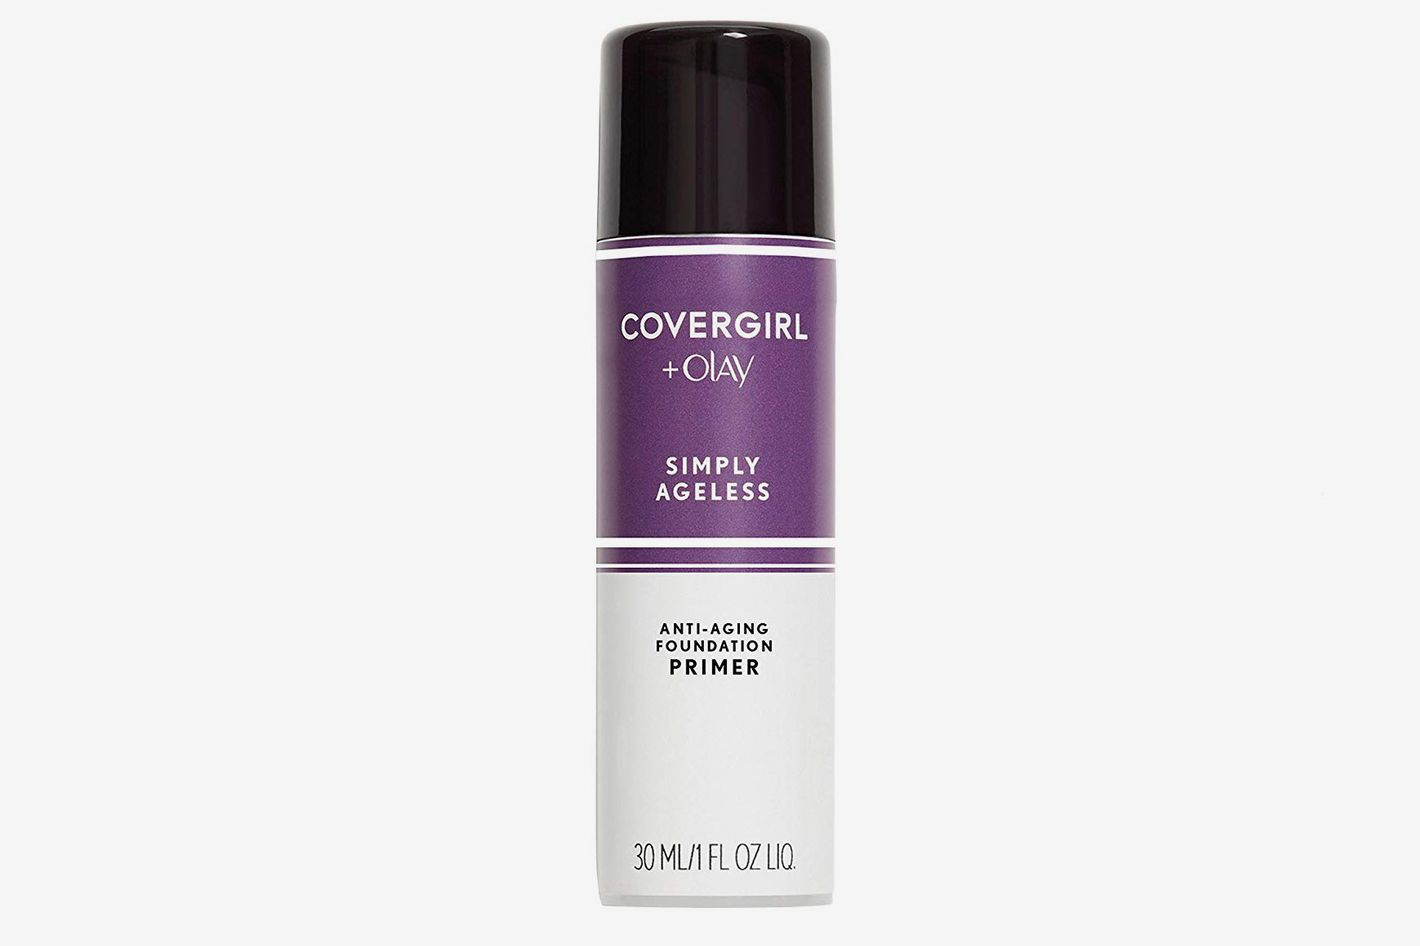 CoverGirl + Olay Simply Ageless Makeup Oil-Free Serum Primer